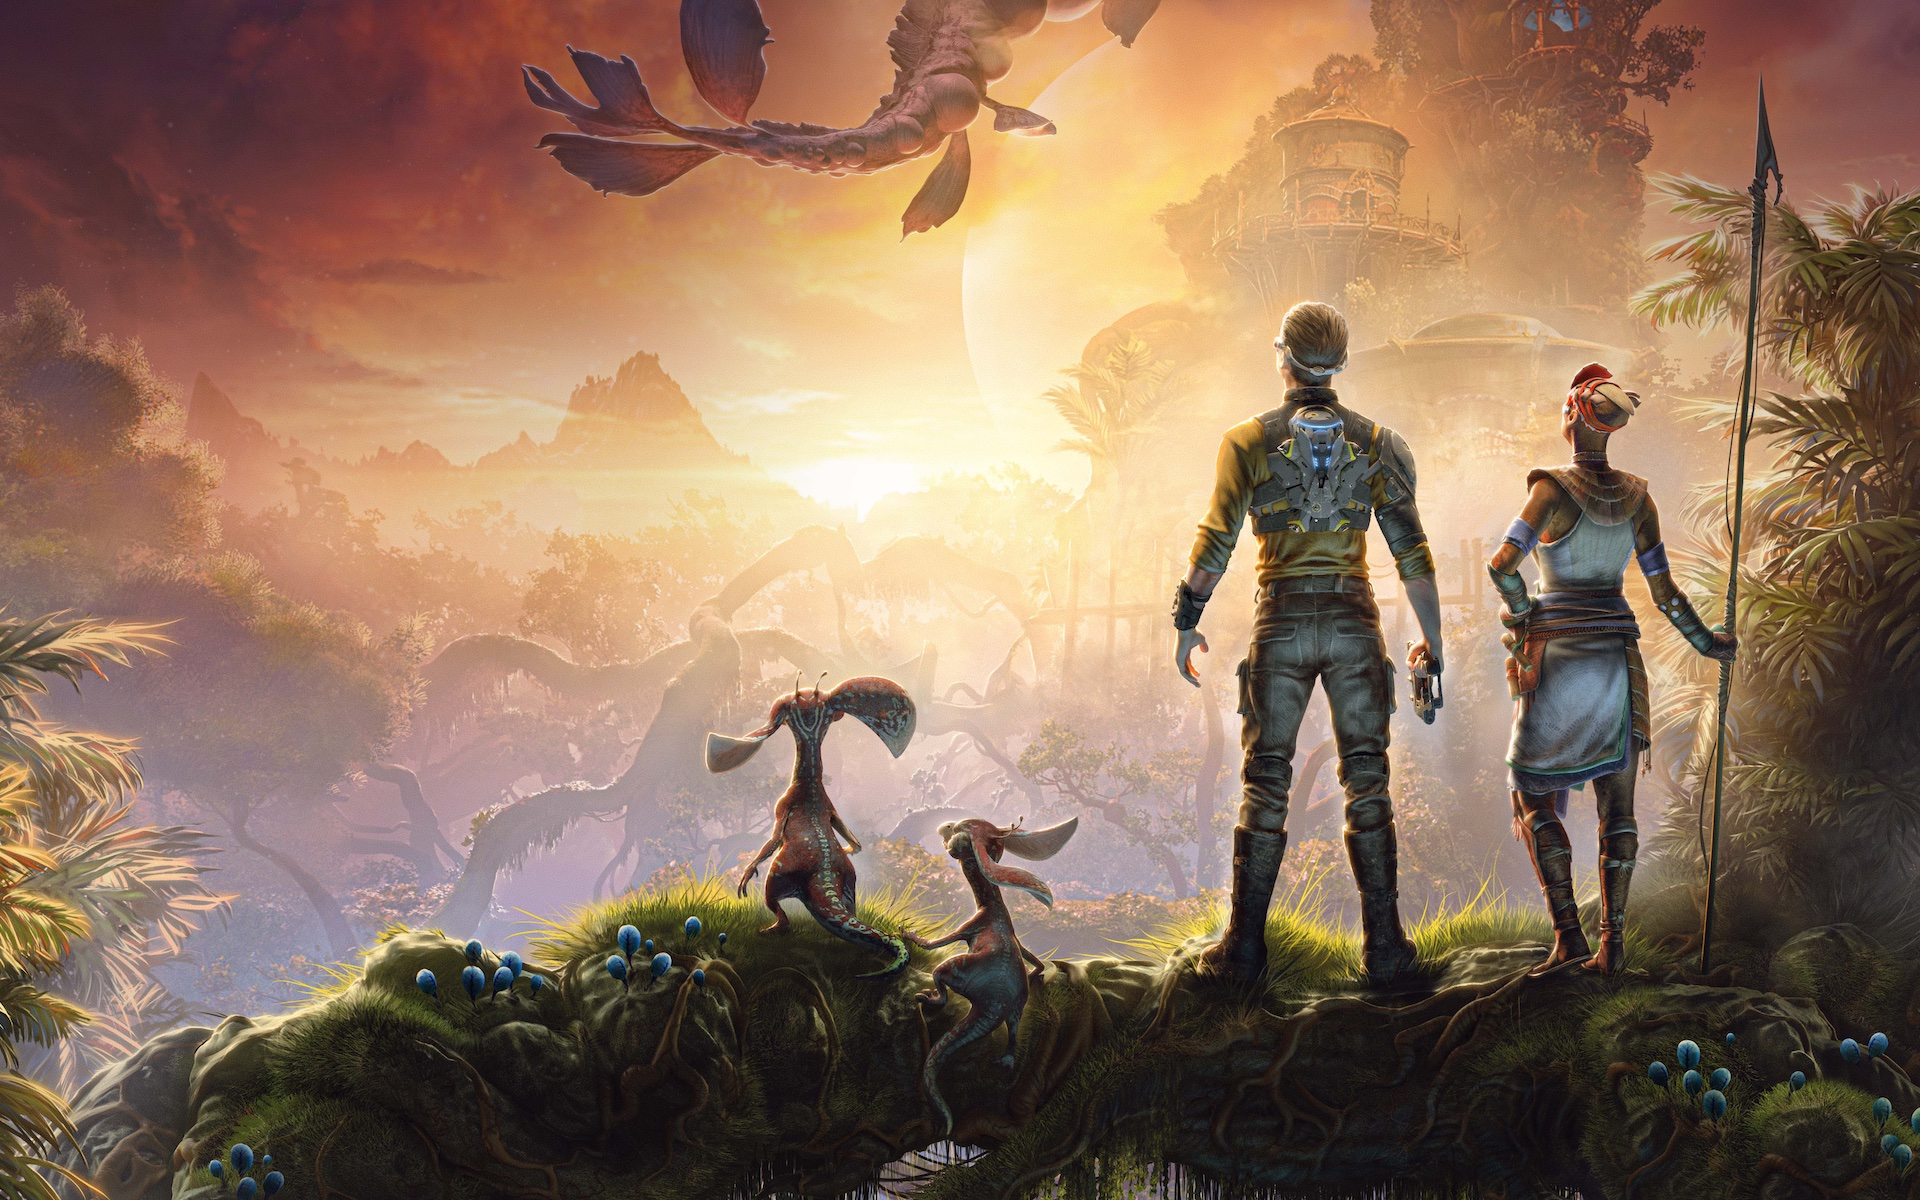 Artwork of Outcast 2: A New Beginning, featuring Cutter Slade and a Talan overlooking a sunrise on Adelpha